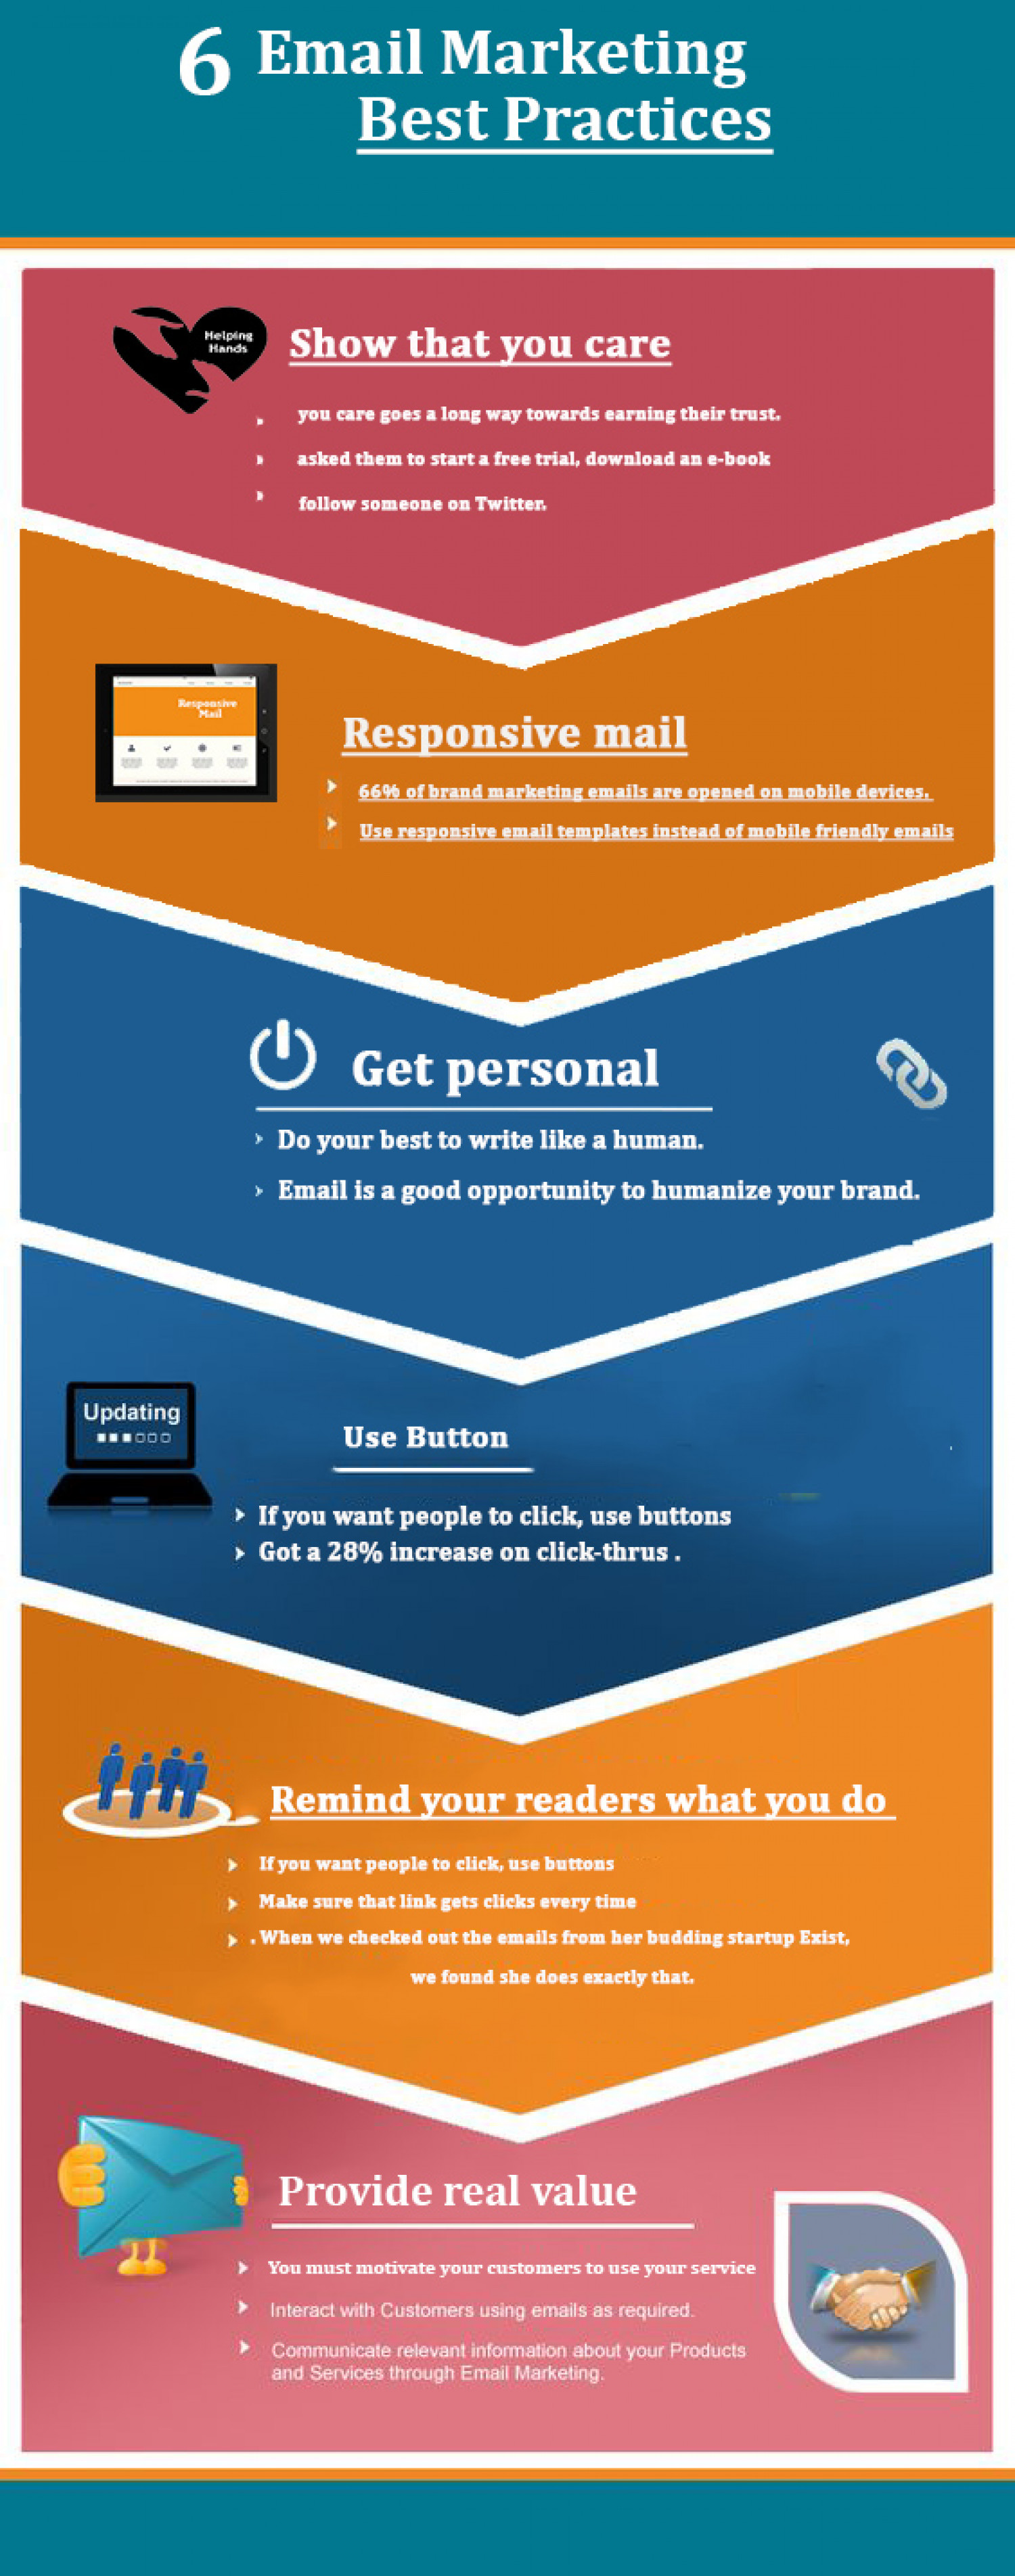 6 Email Marketing Practices Infographic